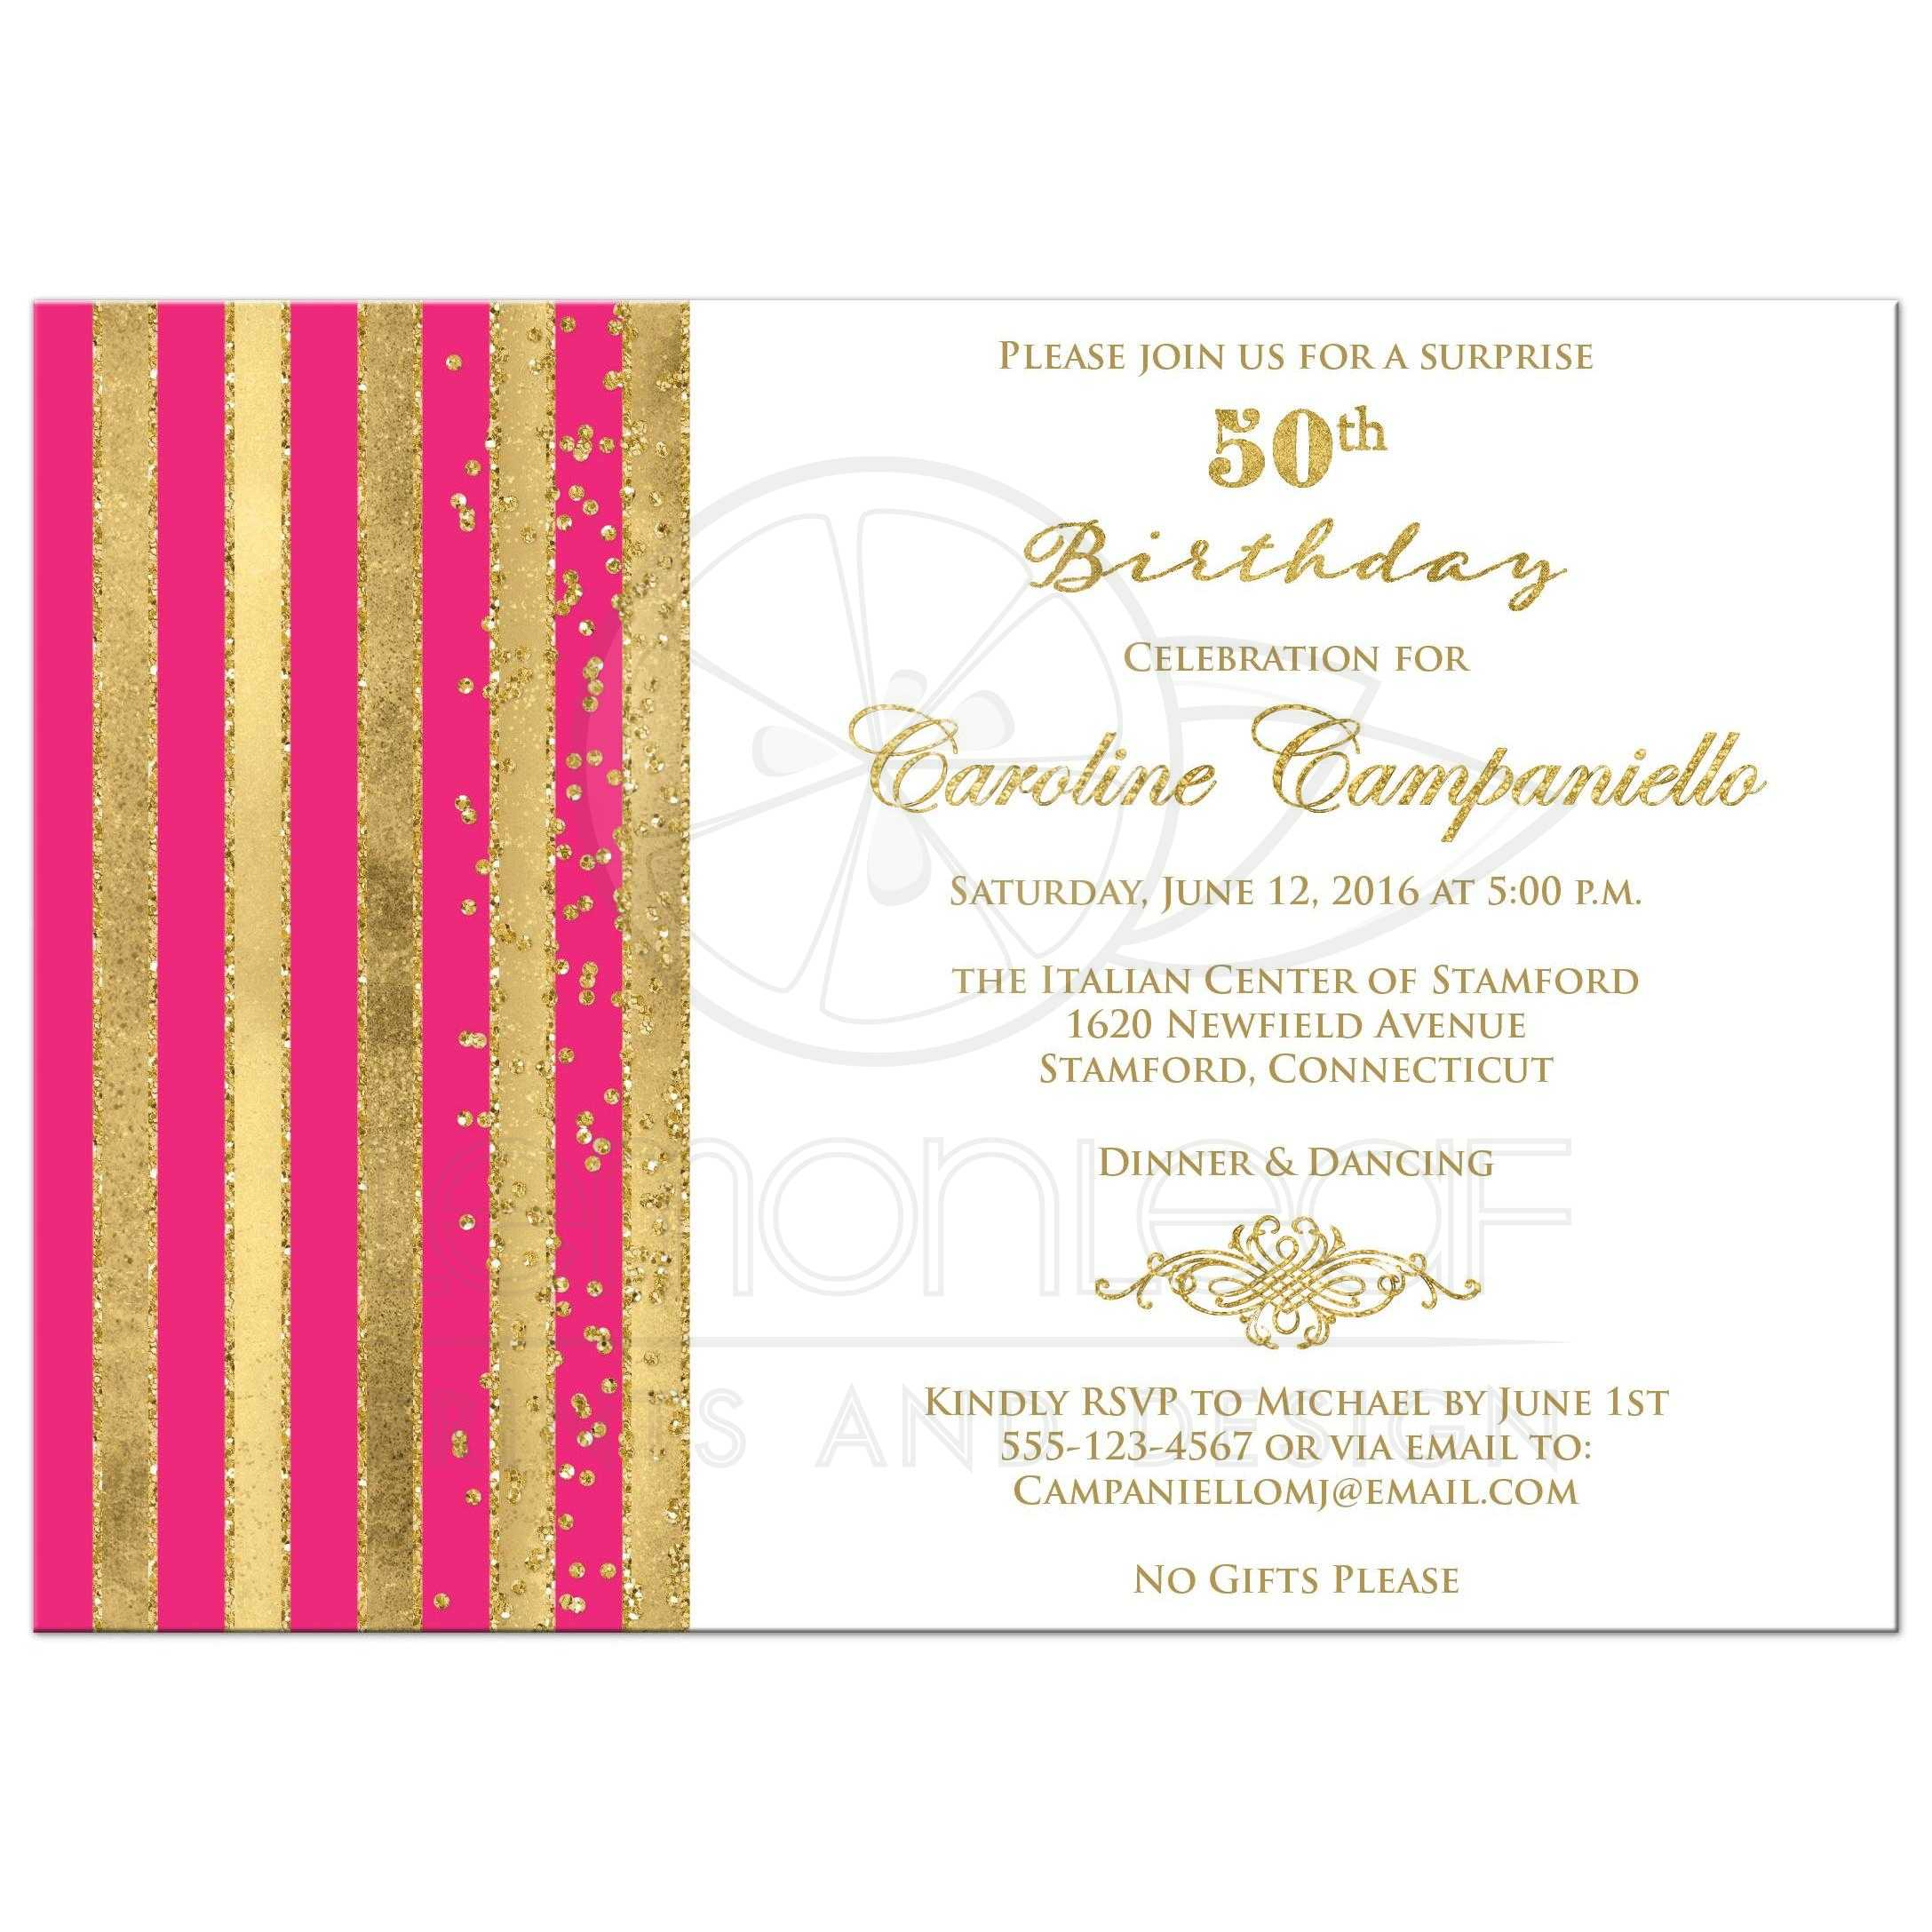 50th birthday invitation hot pink white gold stripes faux glitter simulated gold foil scroll